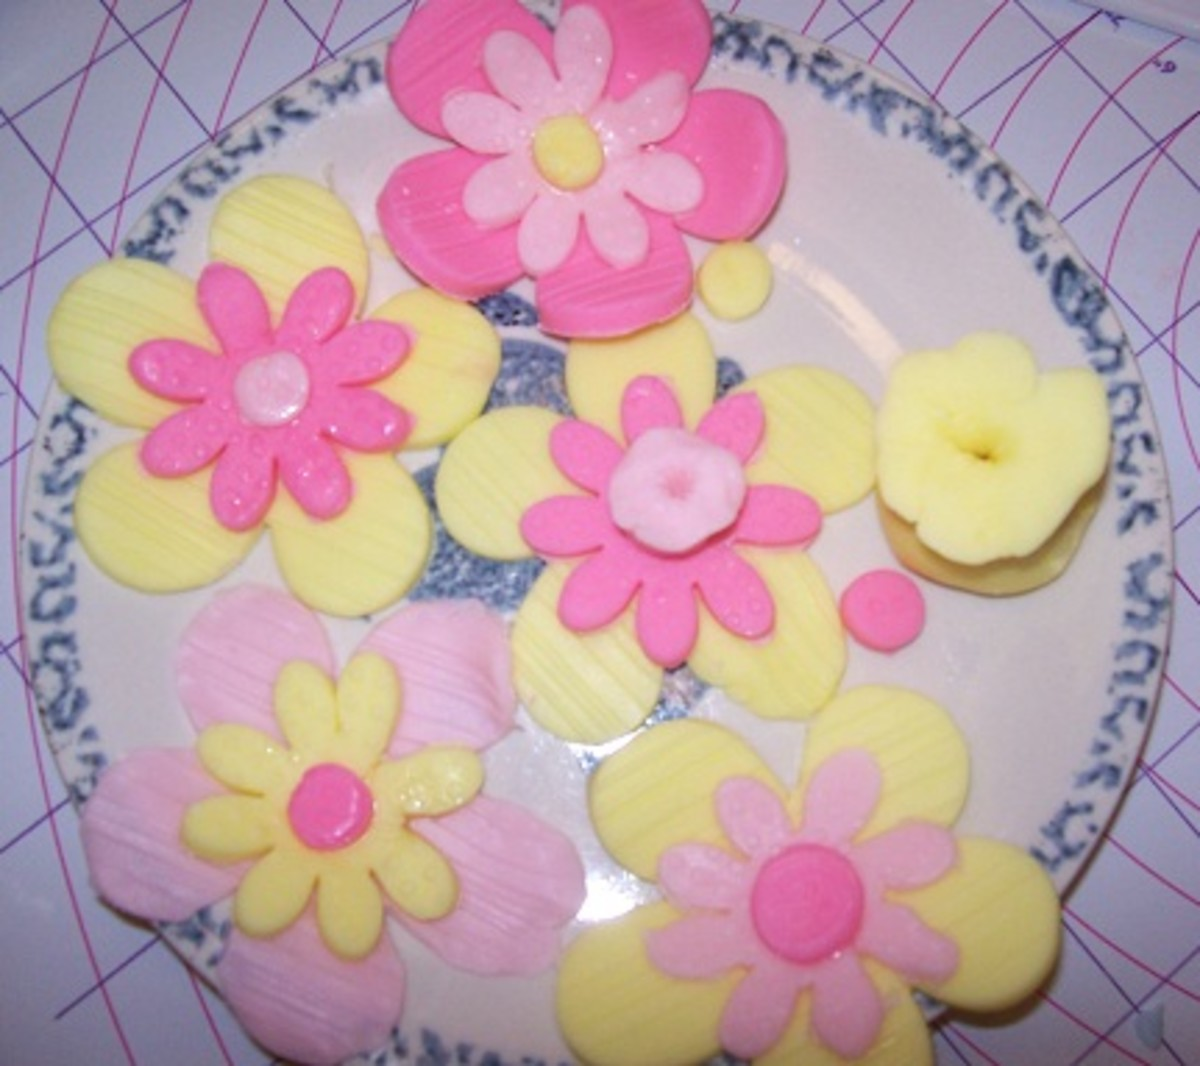 Fondant Cake Decorations: Flowers and Bag of Pixie Dust